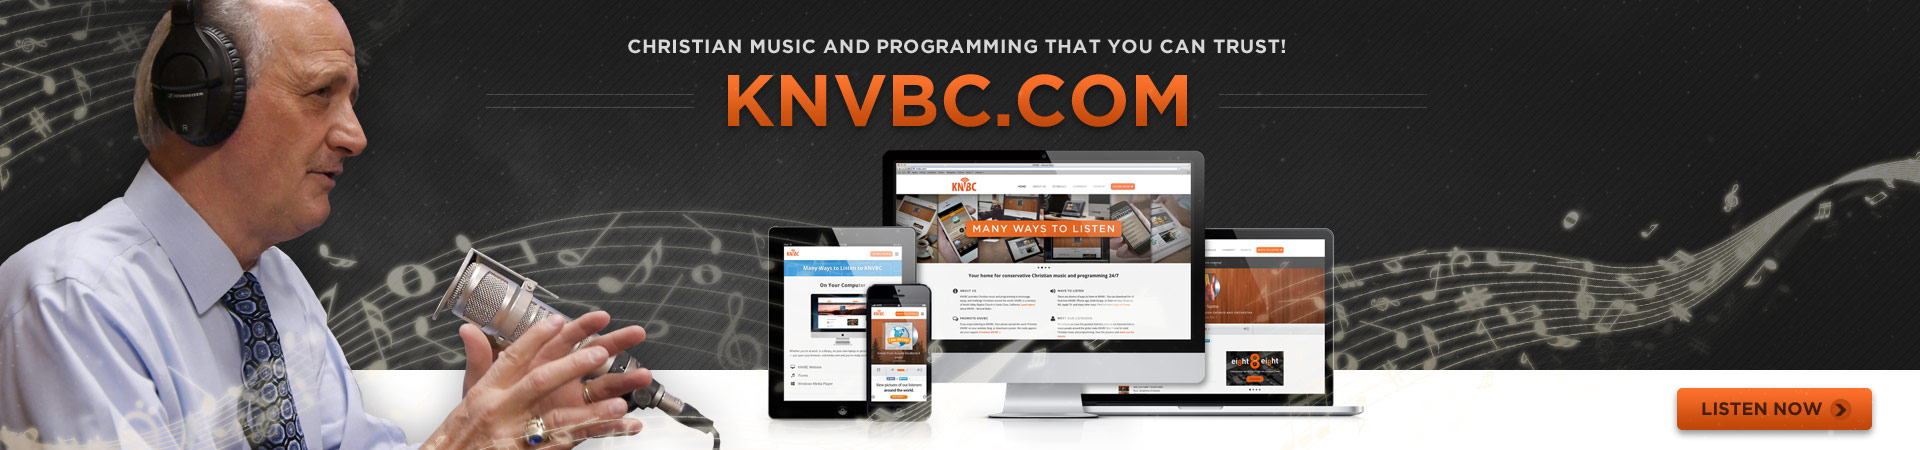 KNVBC - Christian Music and Programming You Can Trust